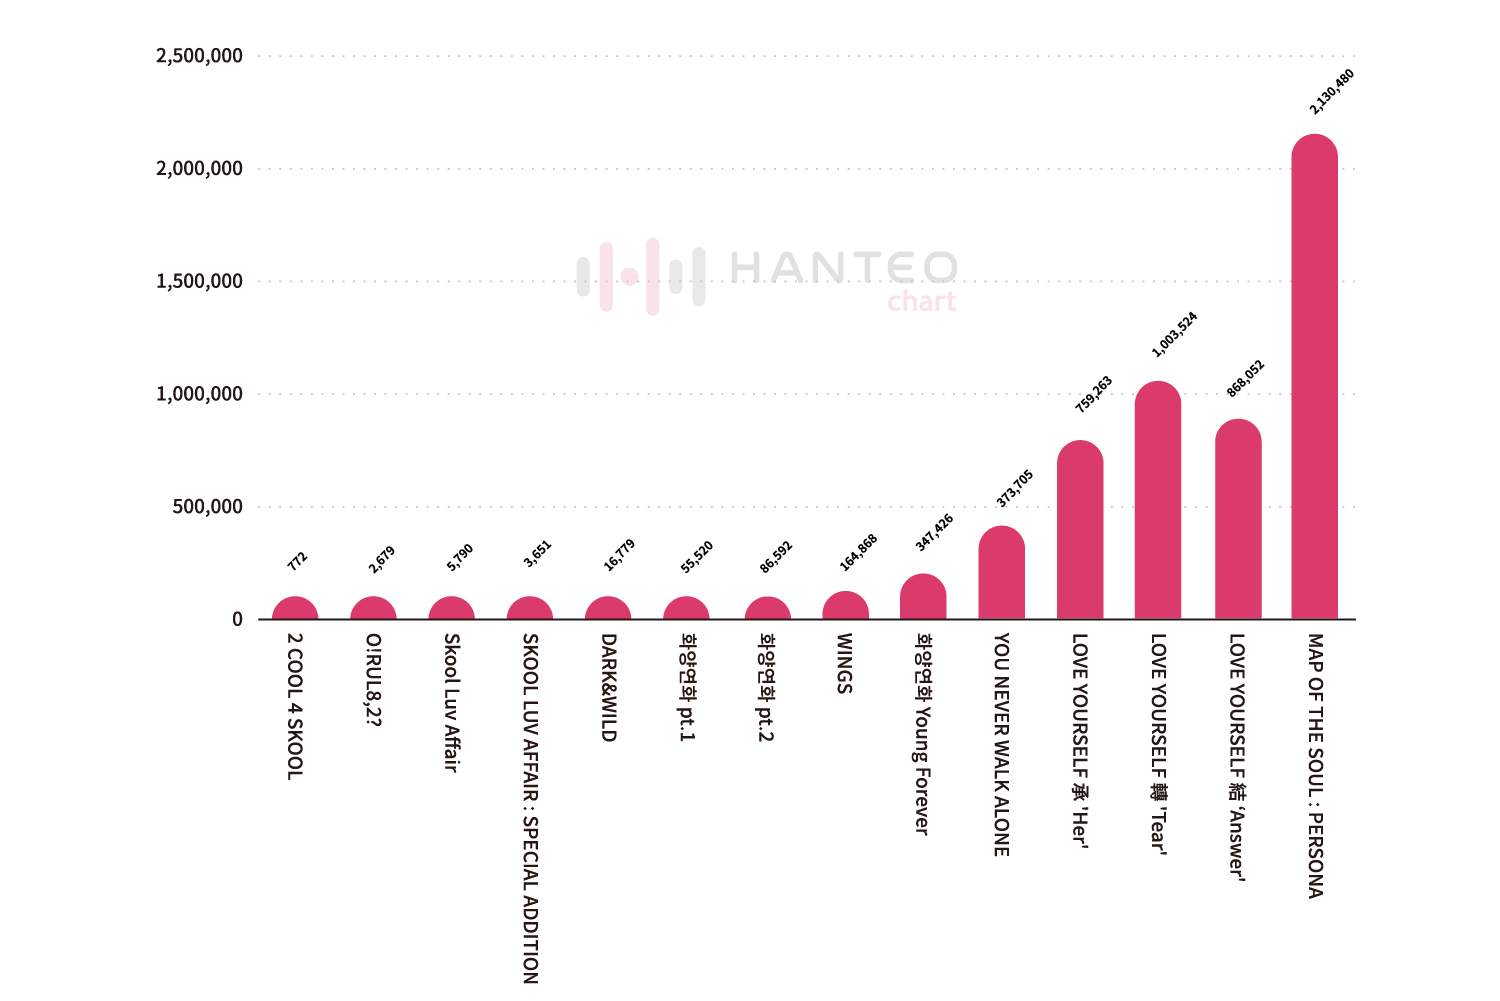 The comparison graph of the Initial Chodong sales of all the album releases by BTS (Data Credit=Hanteo Chart)